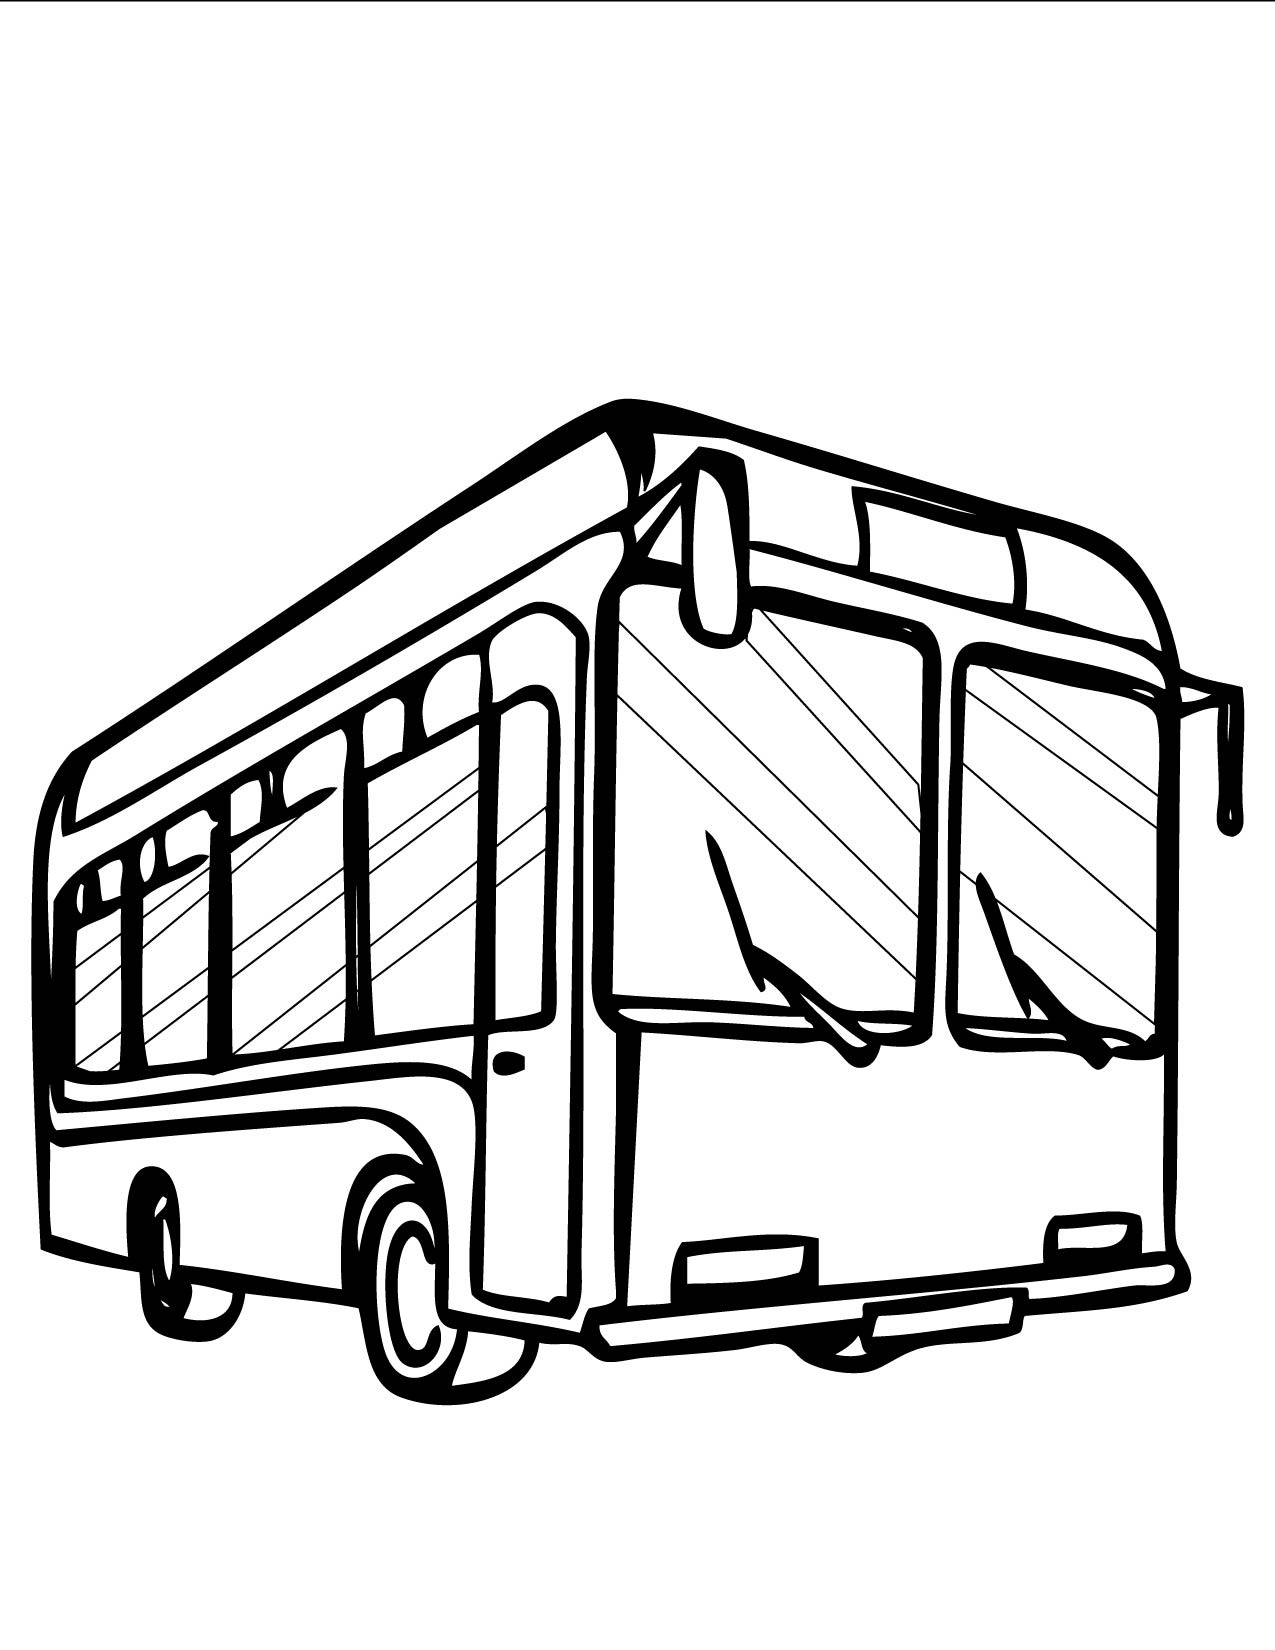 drawing of a bus school bus line drawing at getdrawings free download drawing a bus of